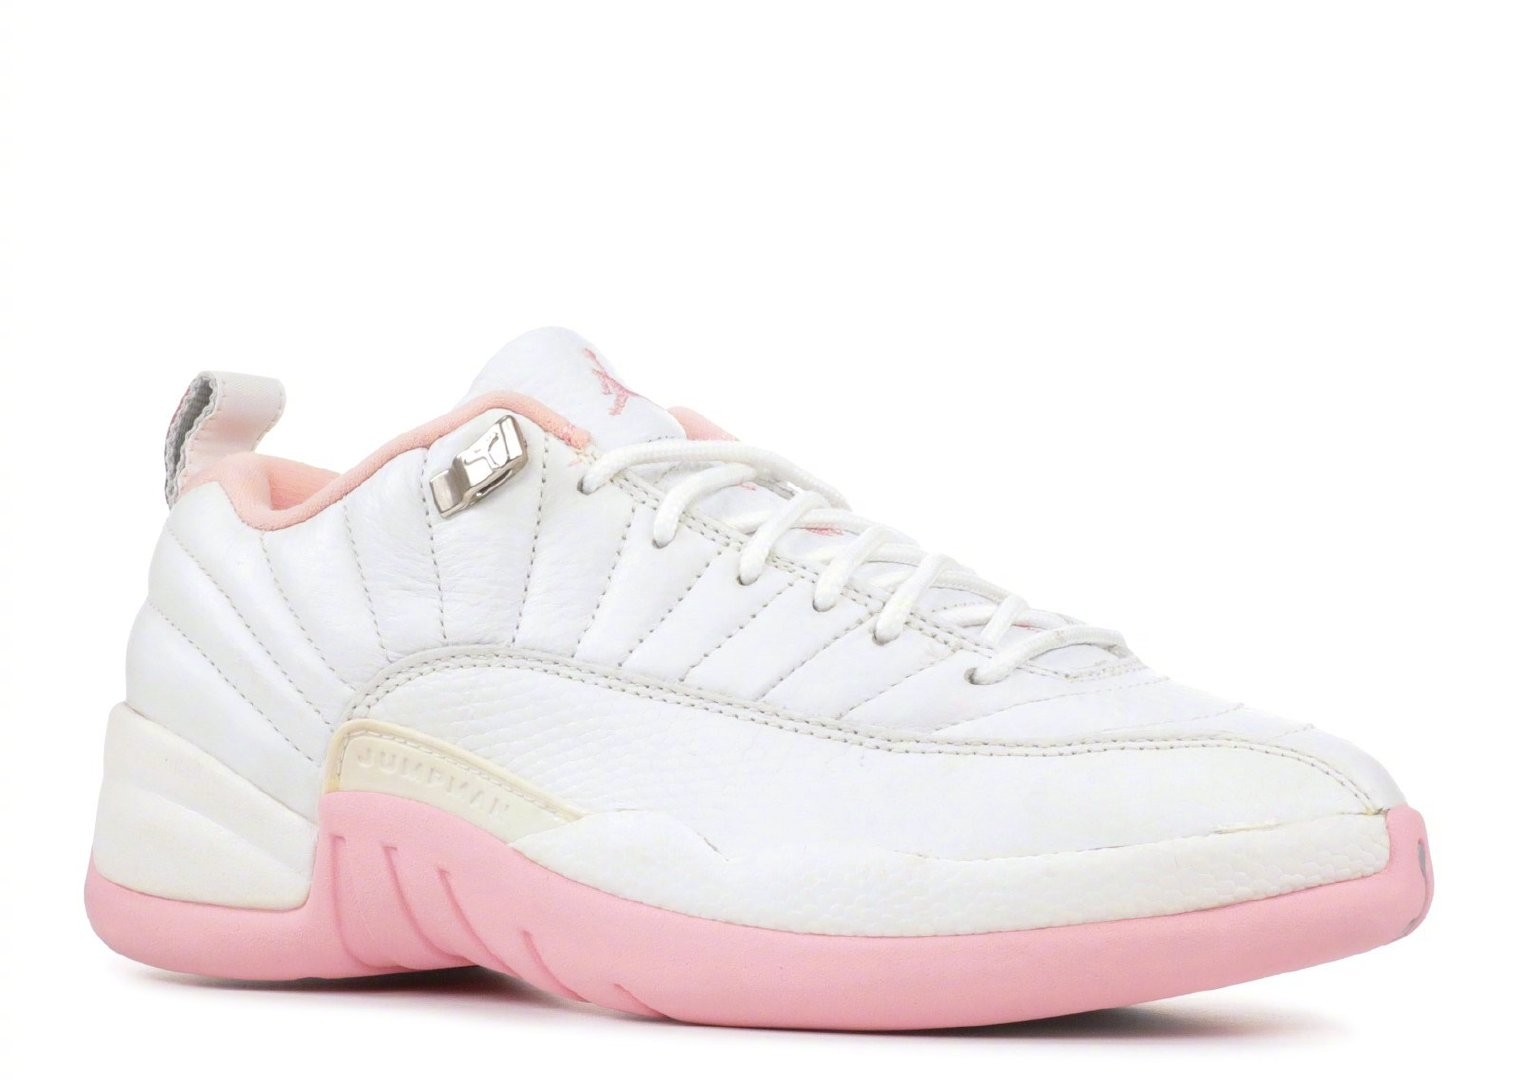 new styles 8a1a4 b0bb7 Air Jordan 12 Low Pink 15年前的今天发售~images FlightClub_新浪网